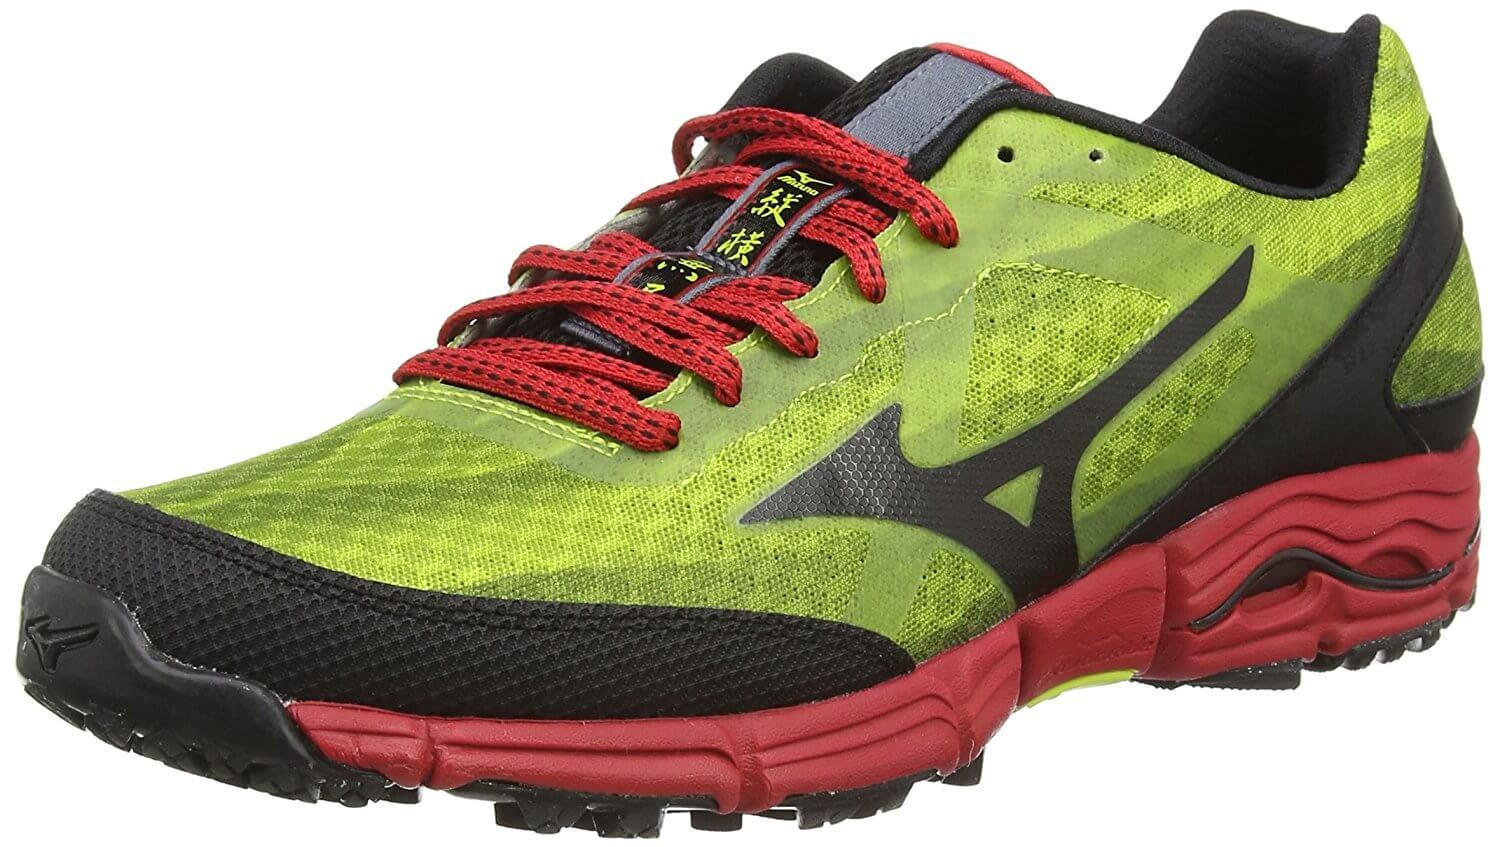 Mizuno Wave Mujin Reviewed and Fully Compared